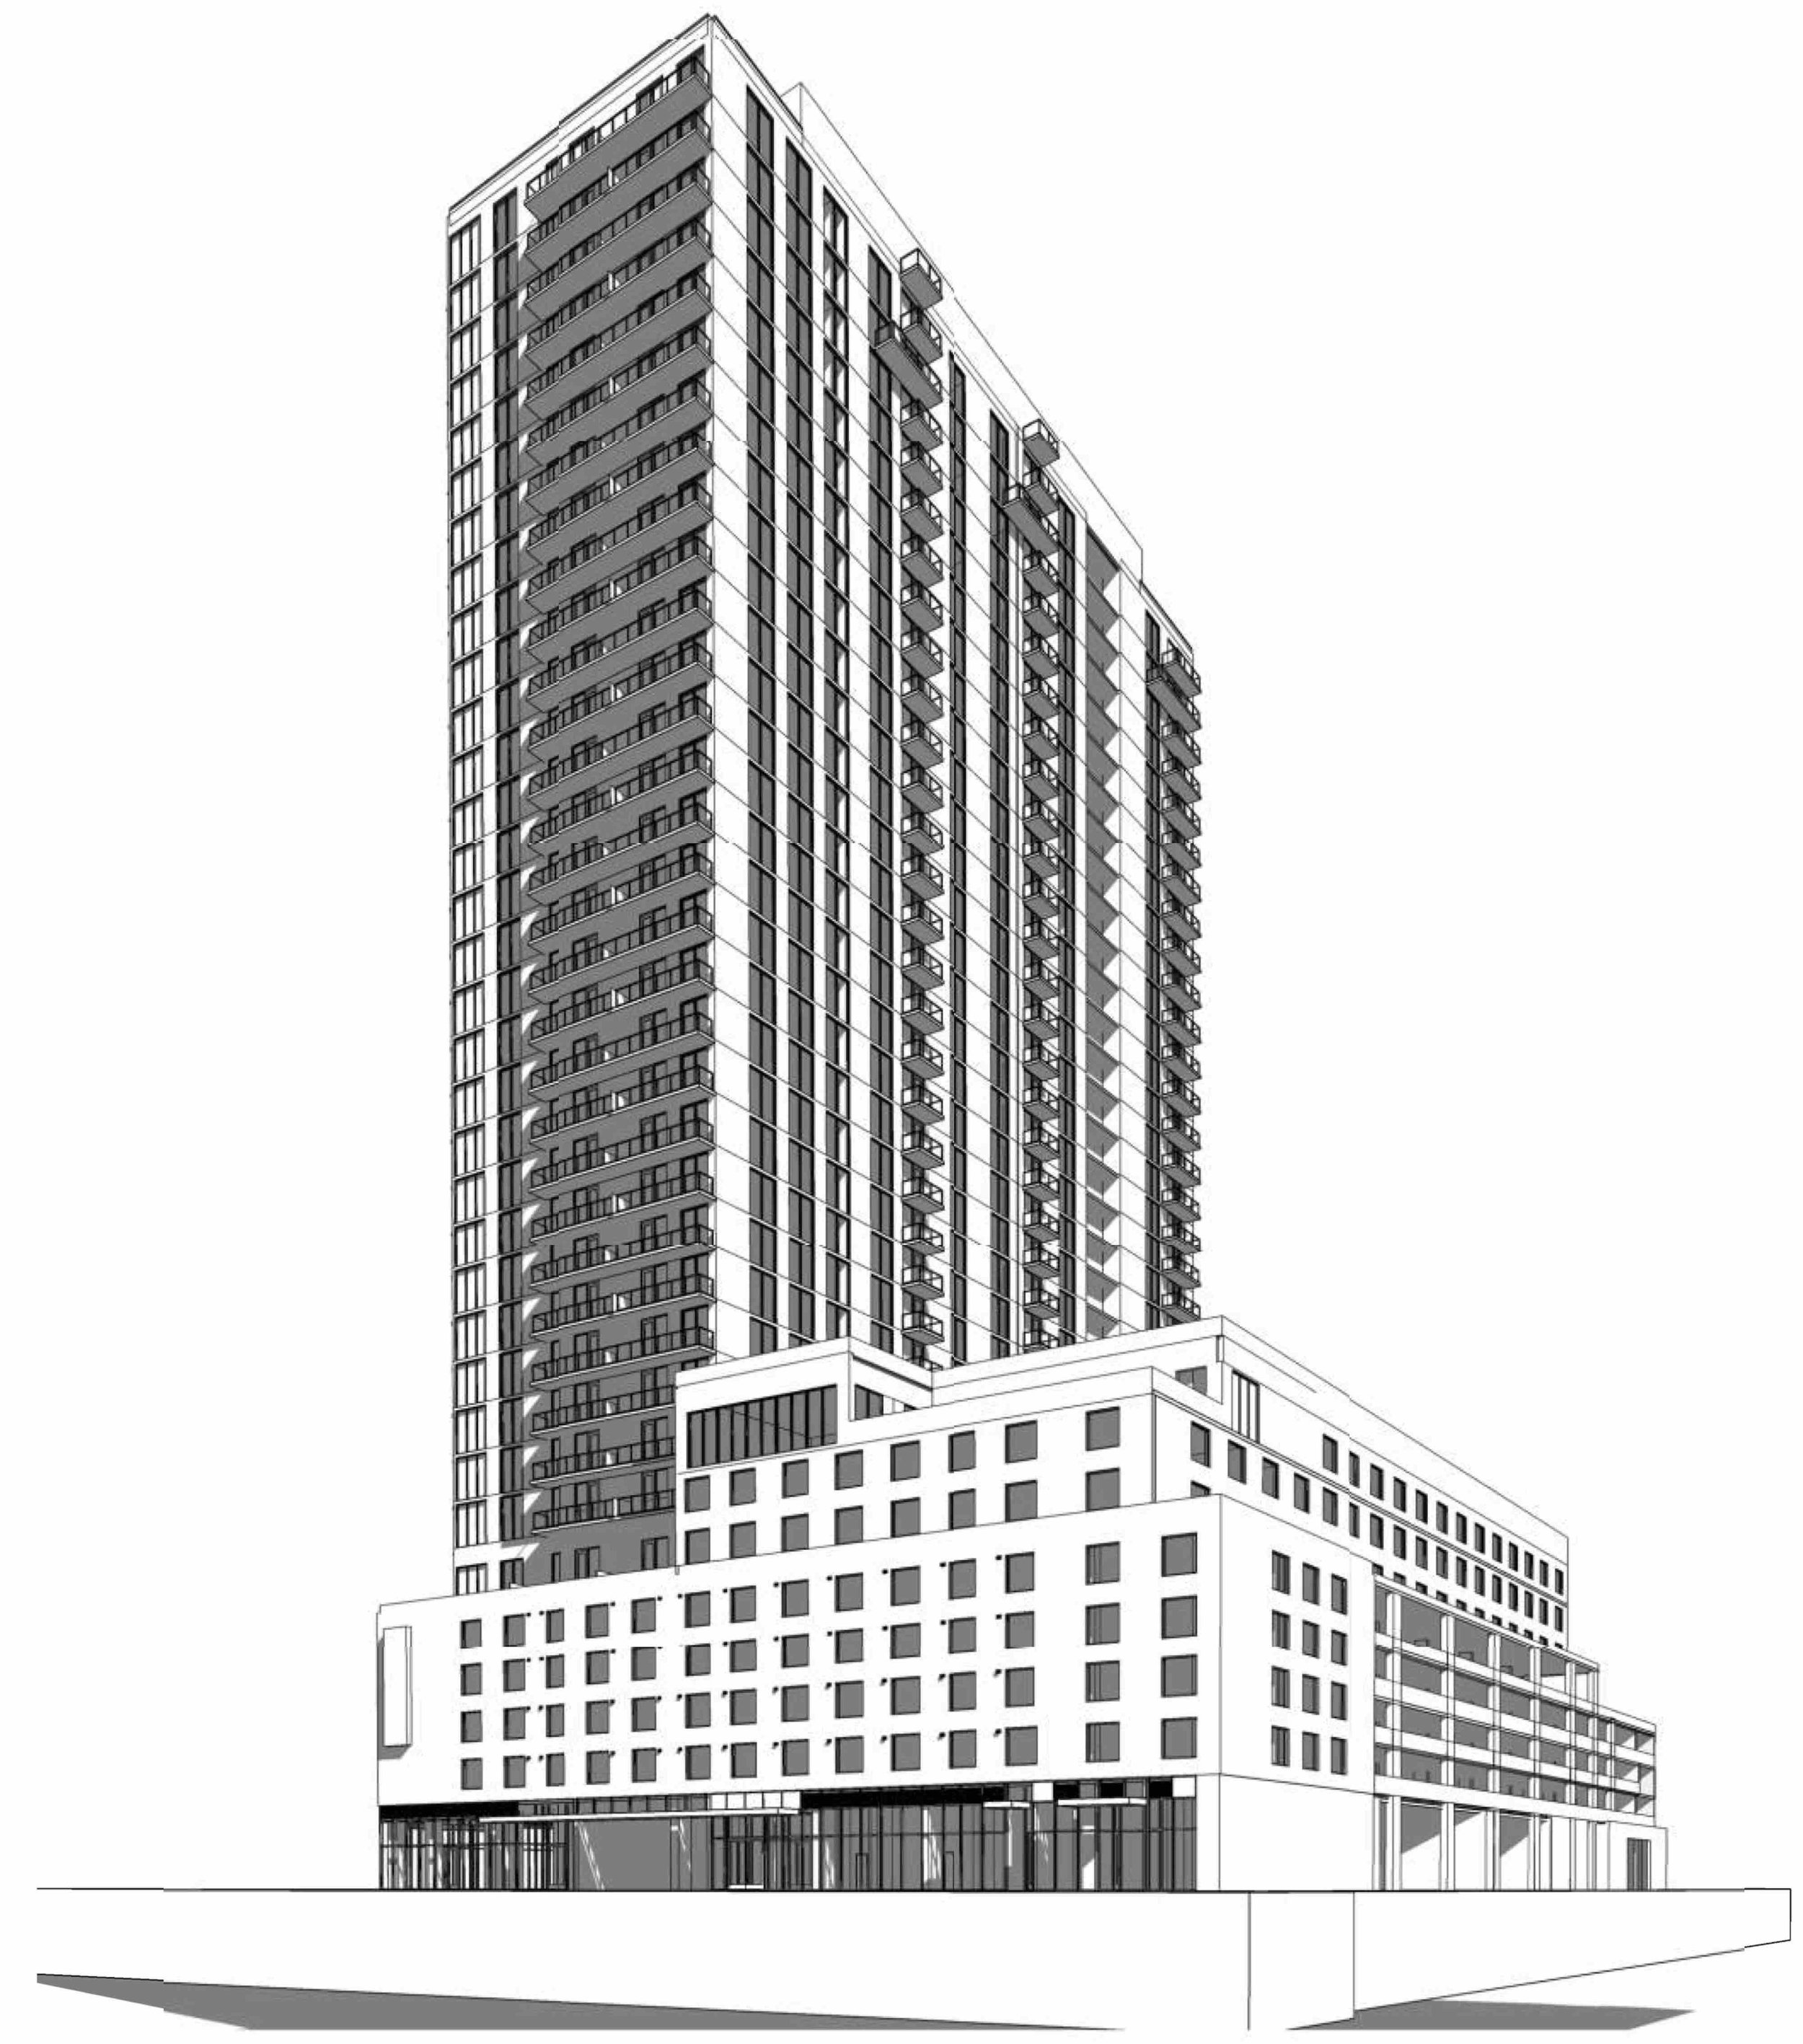 Greystar Real Estate Partners have proposed a 36-story mixed-use development at 225 1st Ave N.